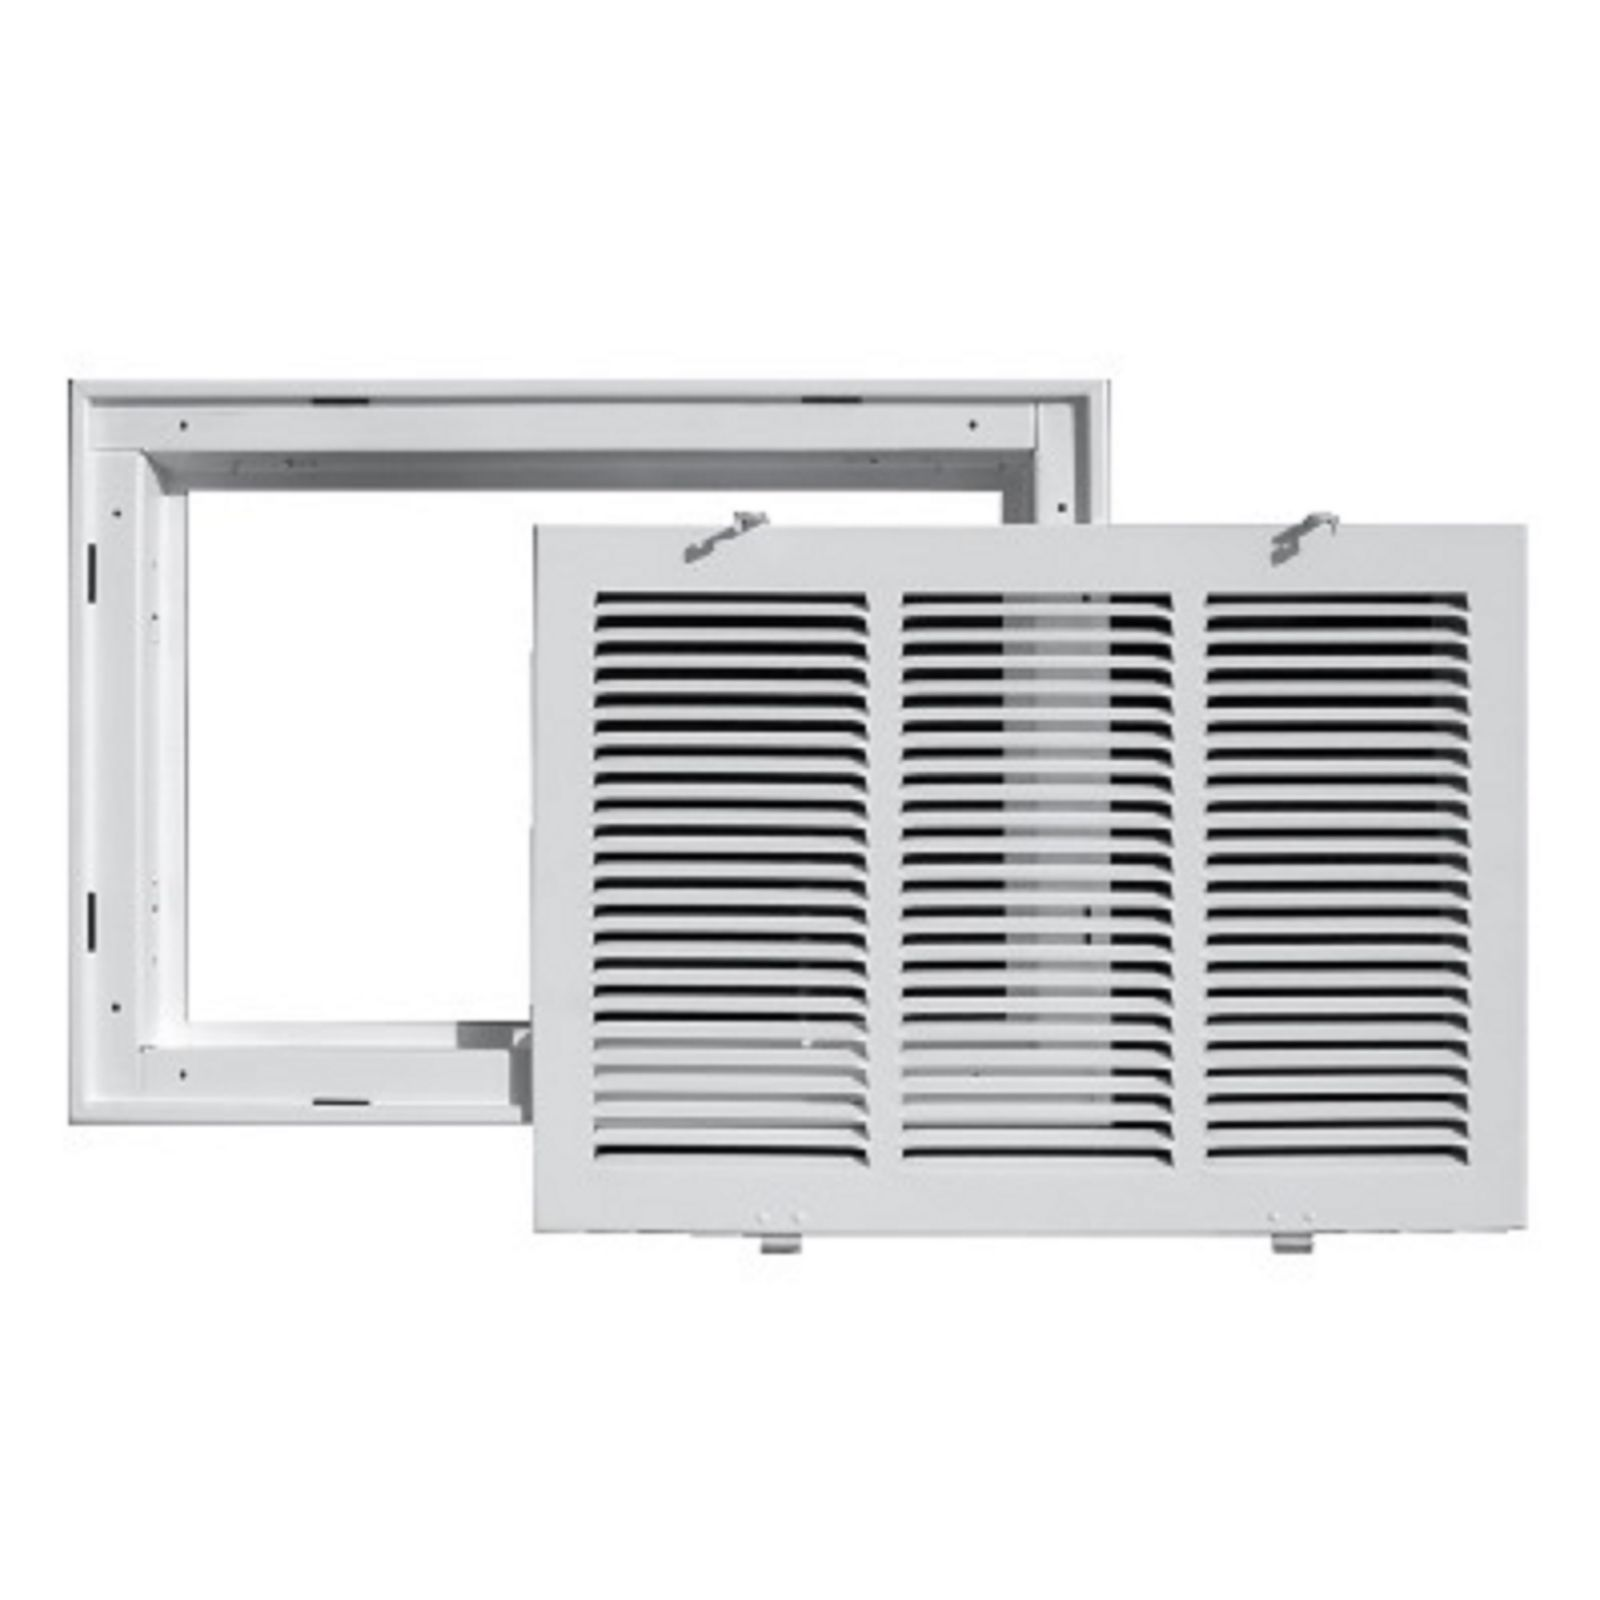 "TRUaire 190RF 30X14 - Steel Return Air Filter Grille With Removable Face, White, 30"" X 14"""